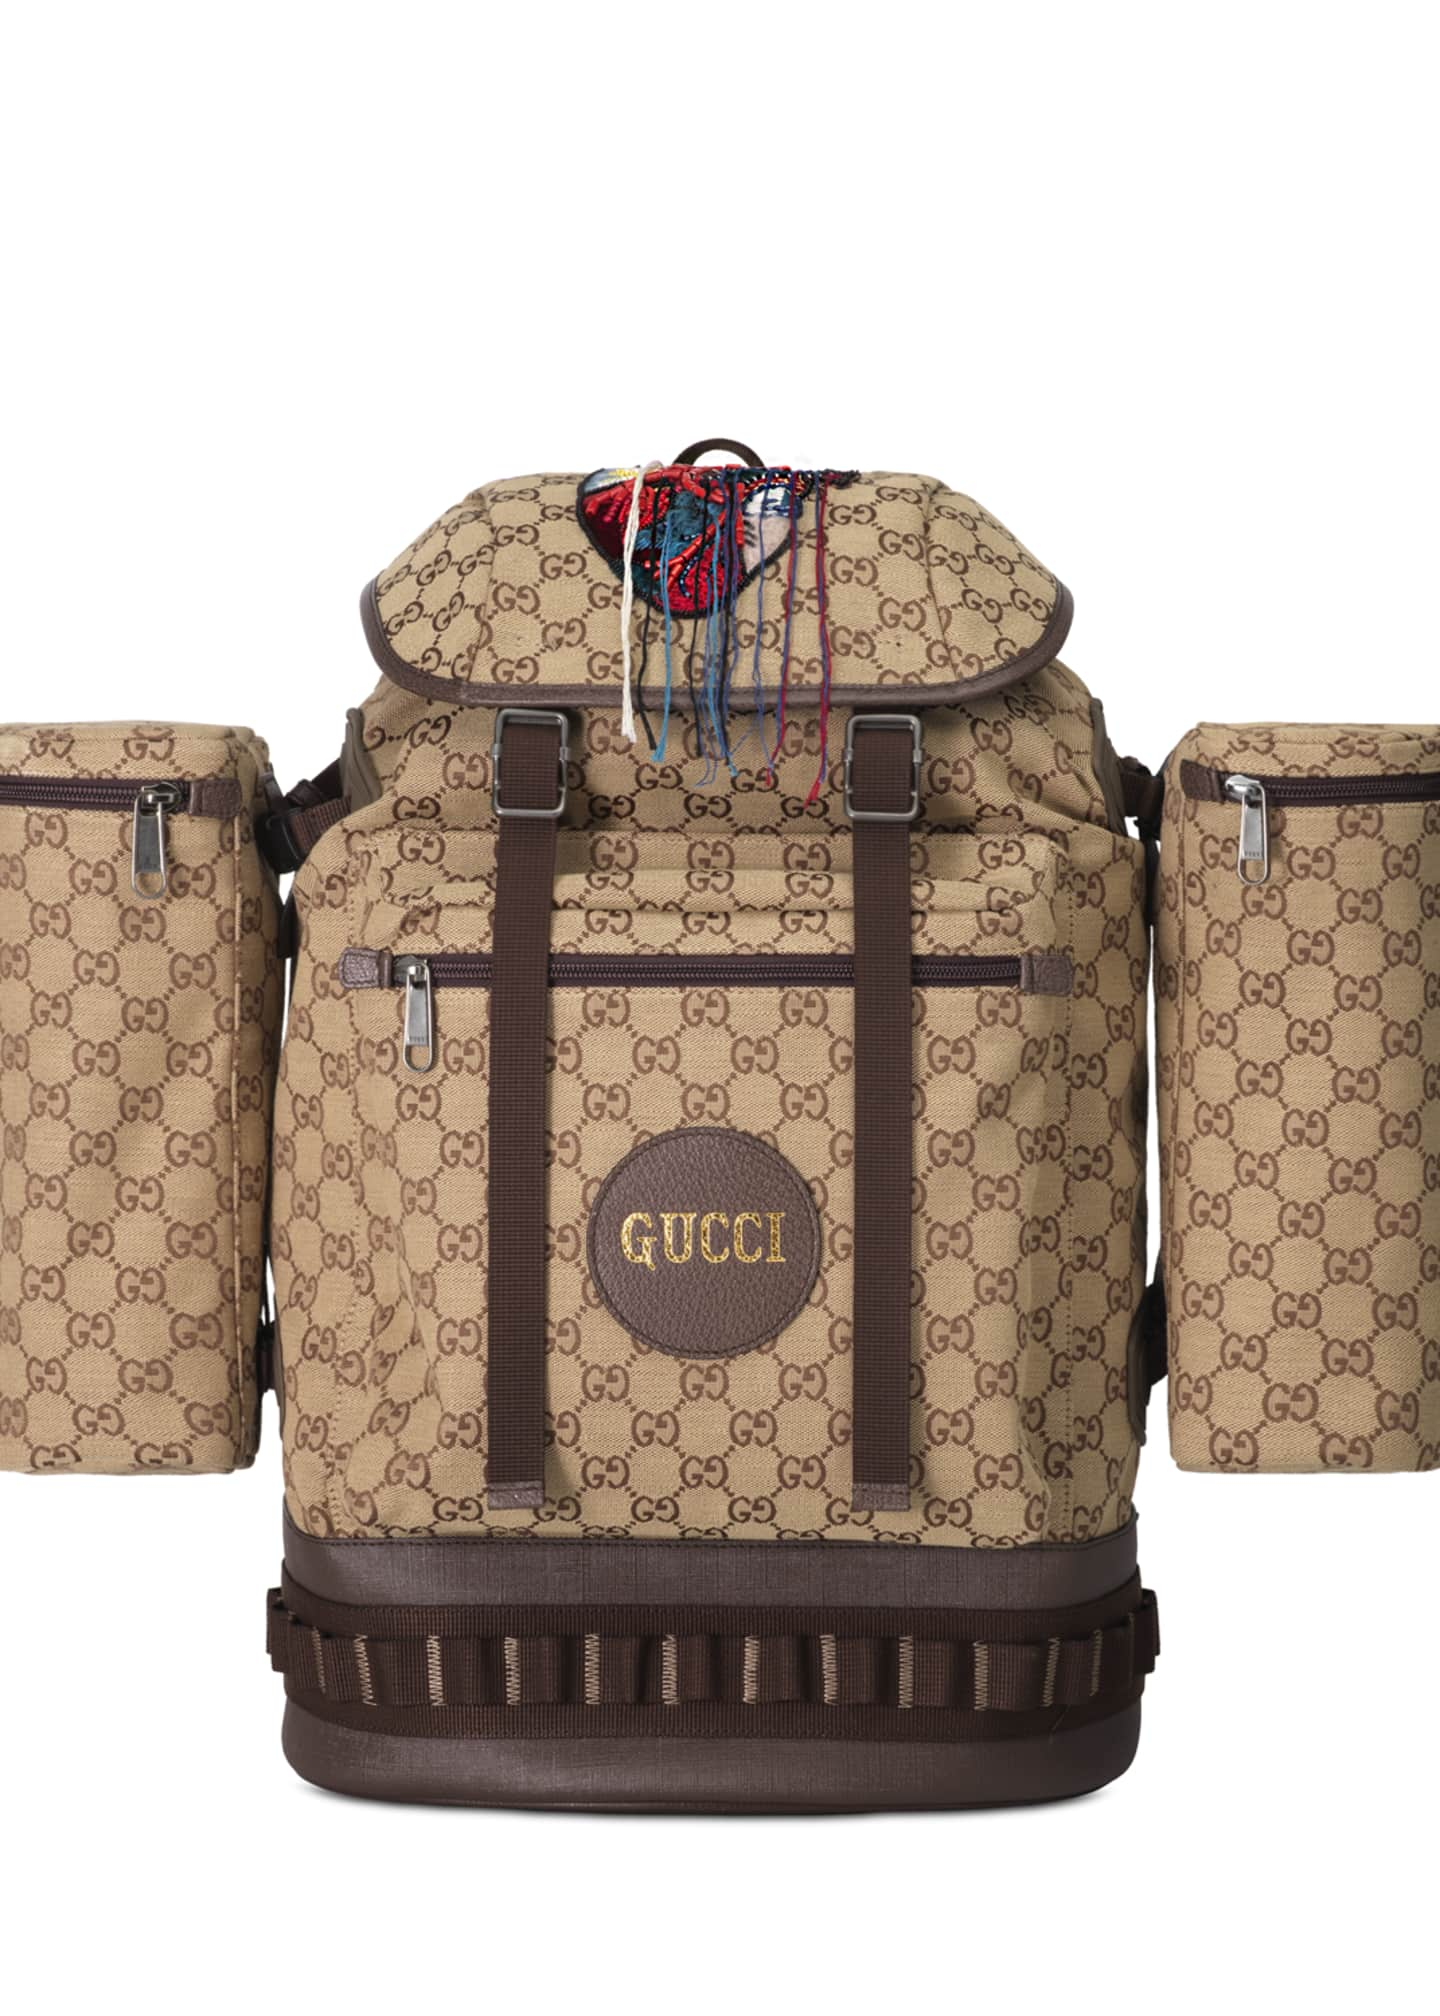 Gucci Men's GG Canvas Flap-Top Backpack